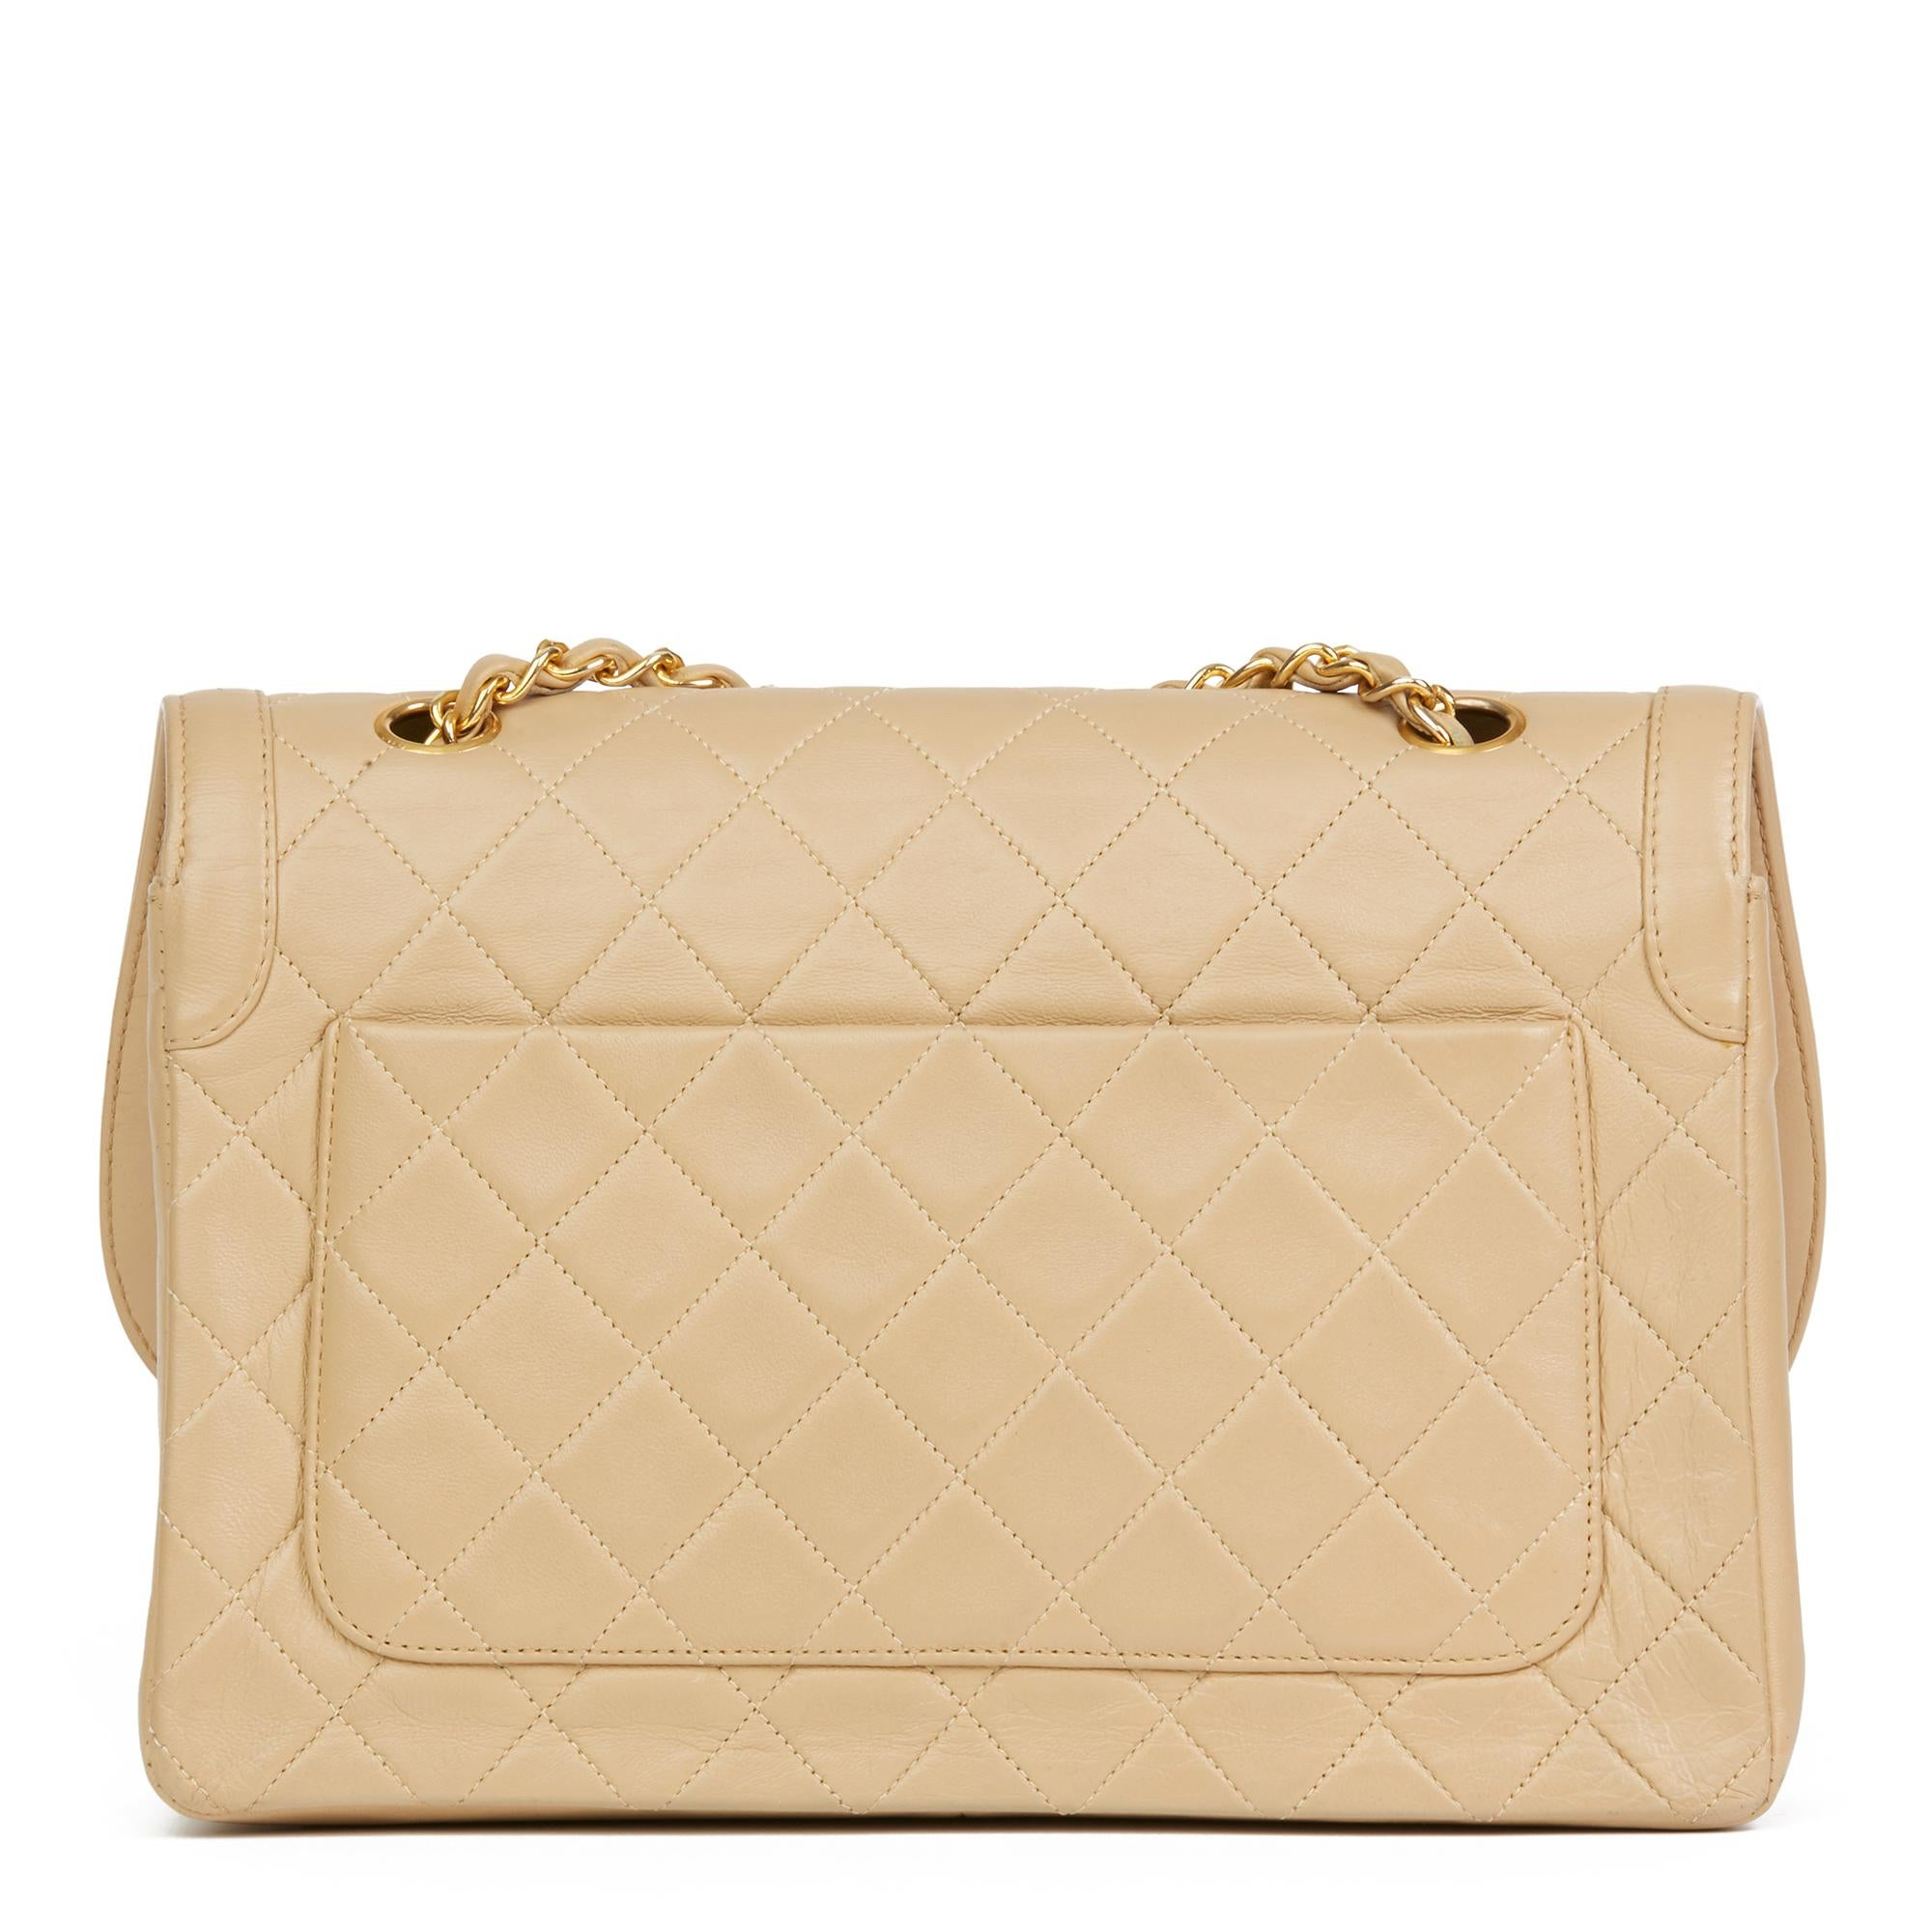 705eee3160cd 1990 Chanel Beige Quilted Lambskin Vintage Classic Single Flap Bag with  Wallet at 1stdibs